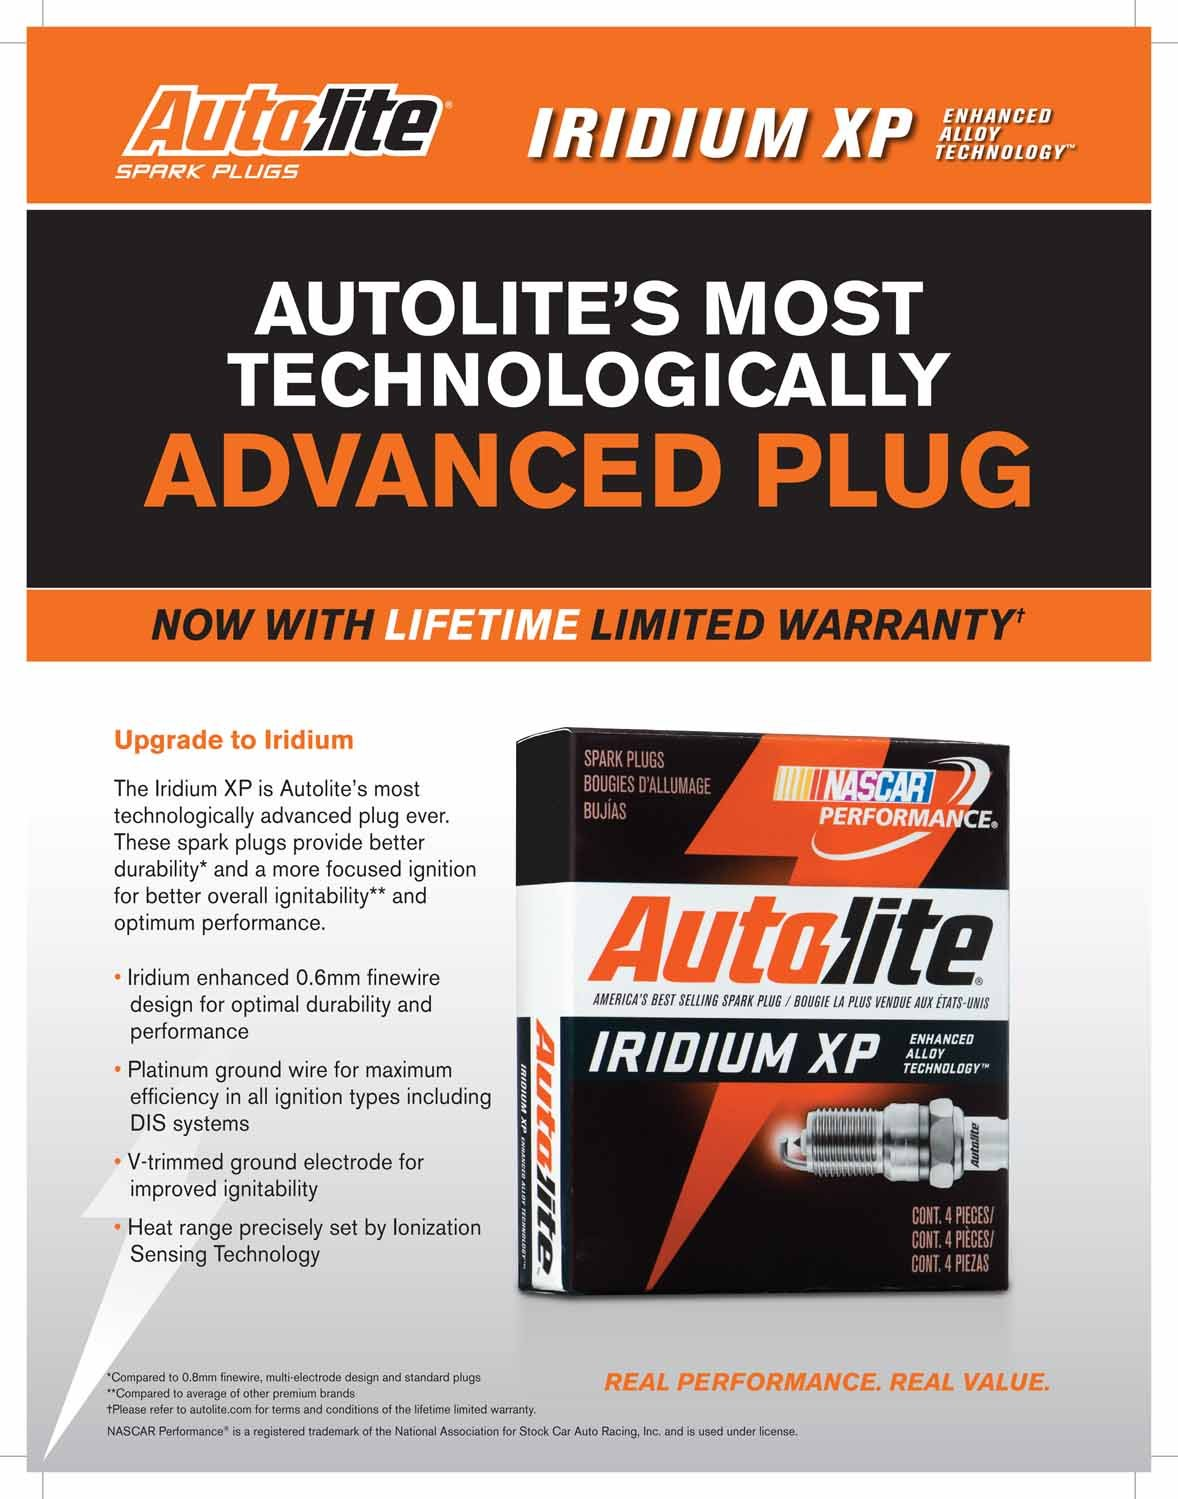 Amazon.com: Autolite XP5224-4PK Iridium XP Spark Plug, Pack of 4: Automotive